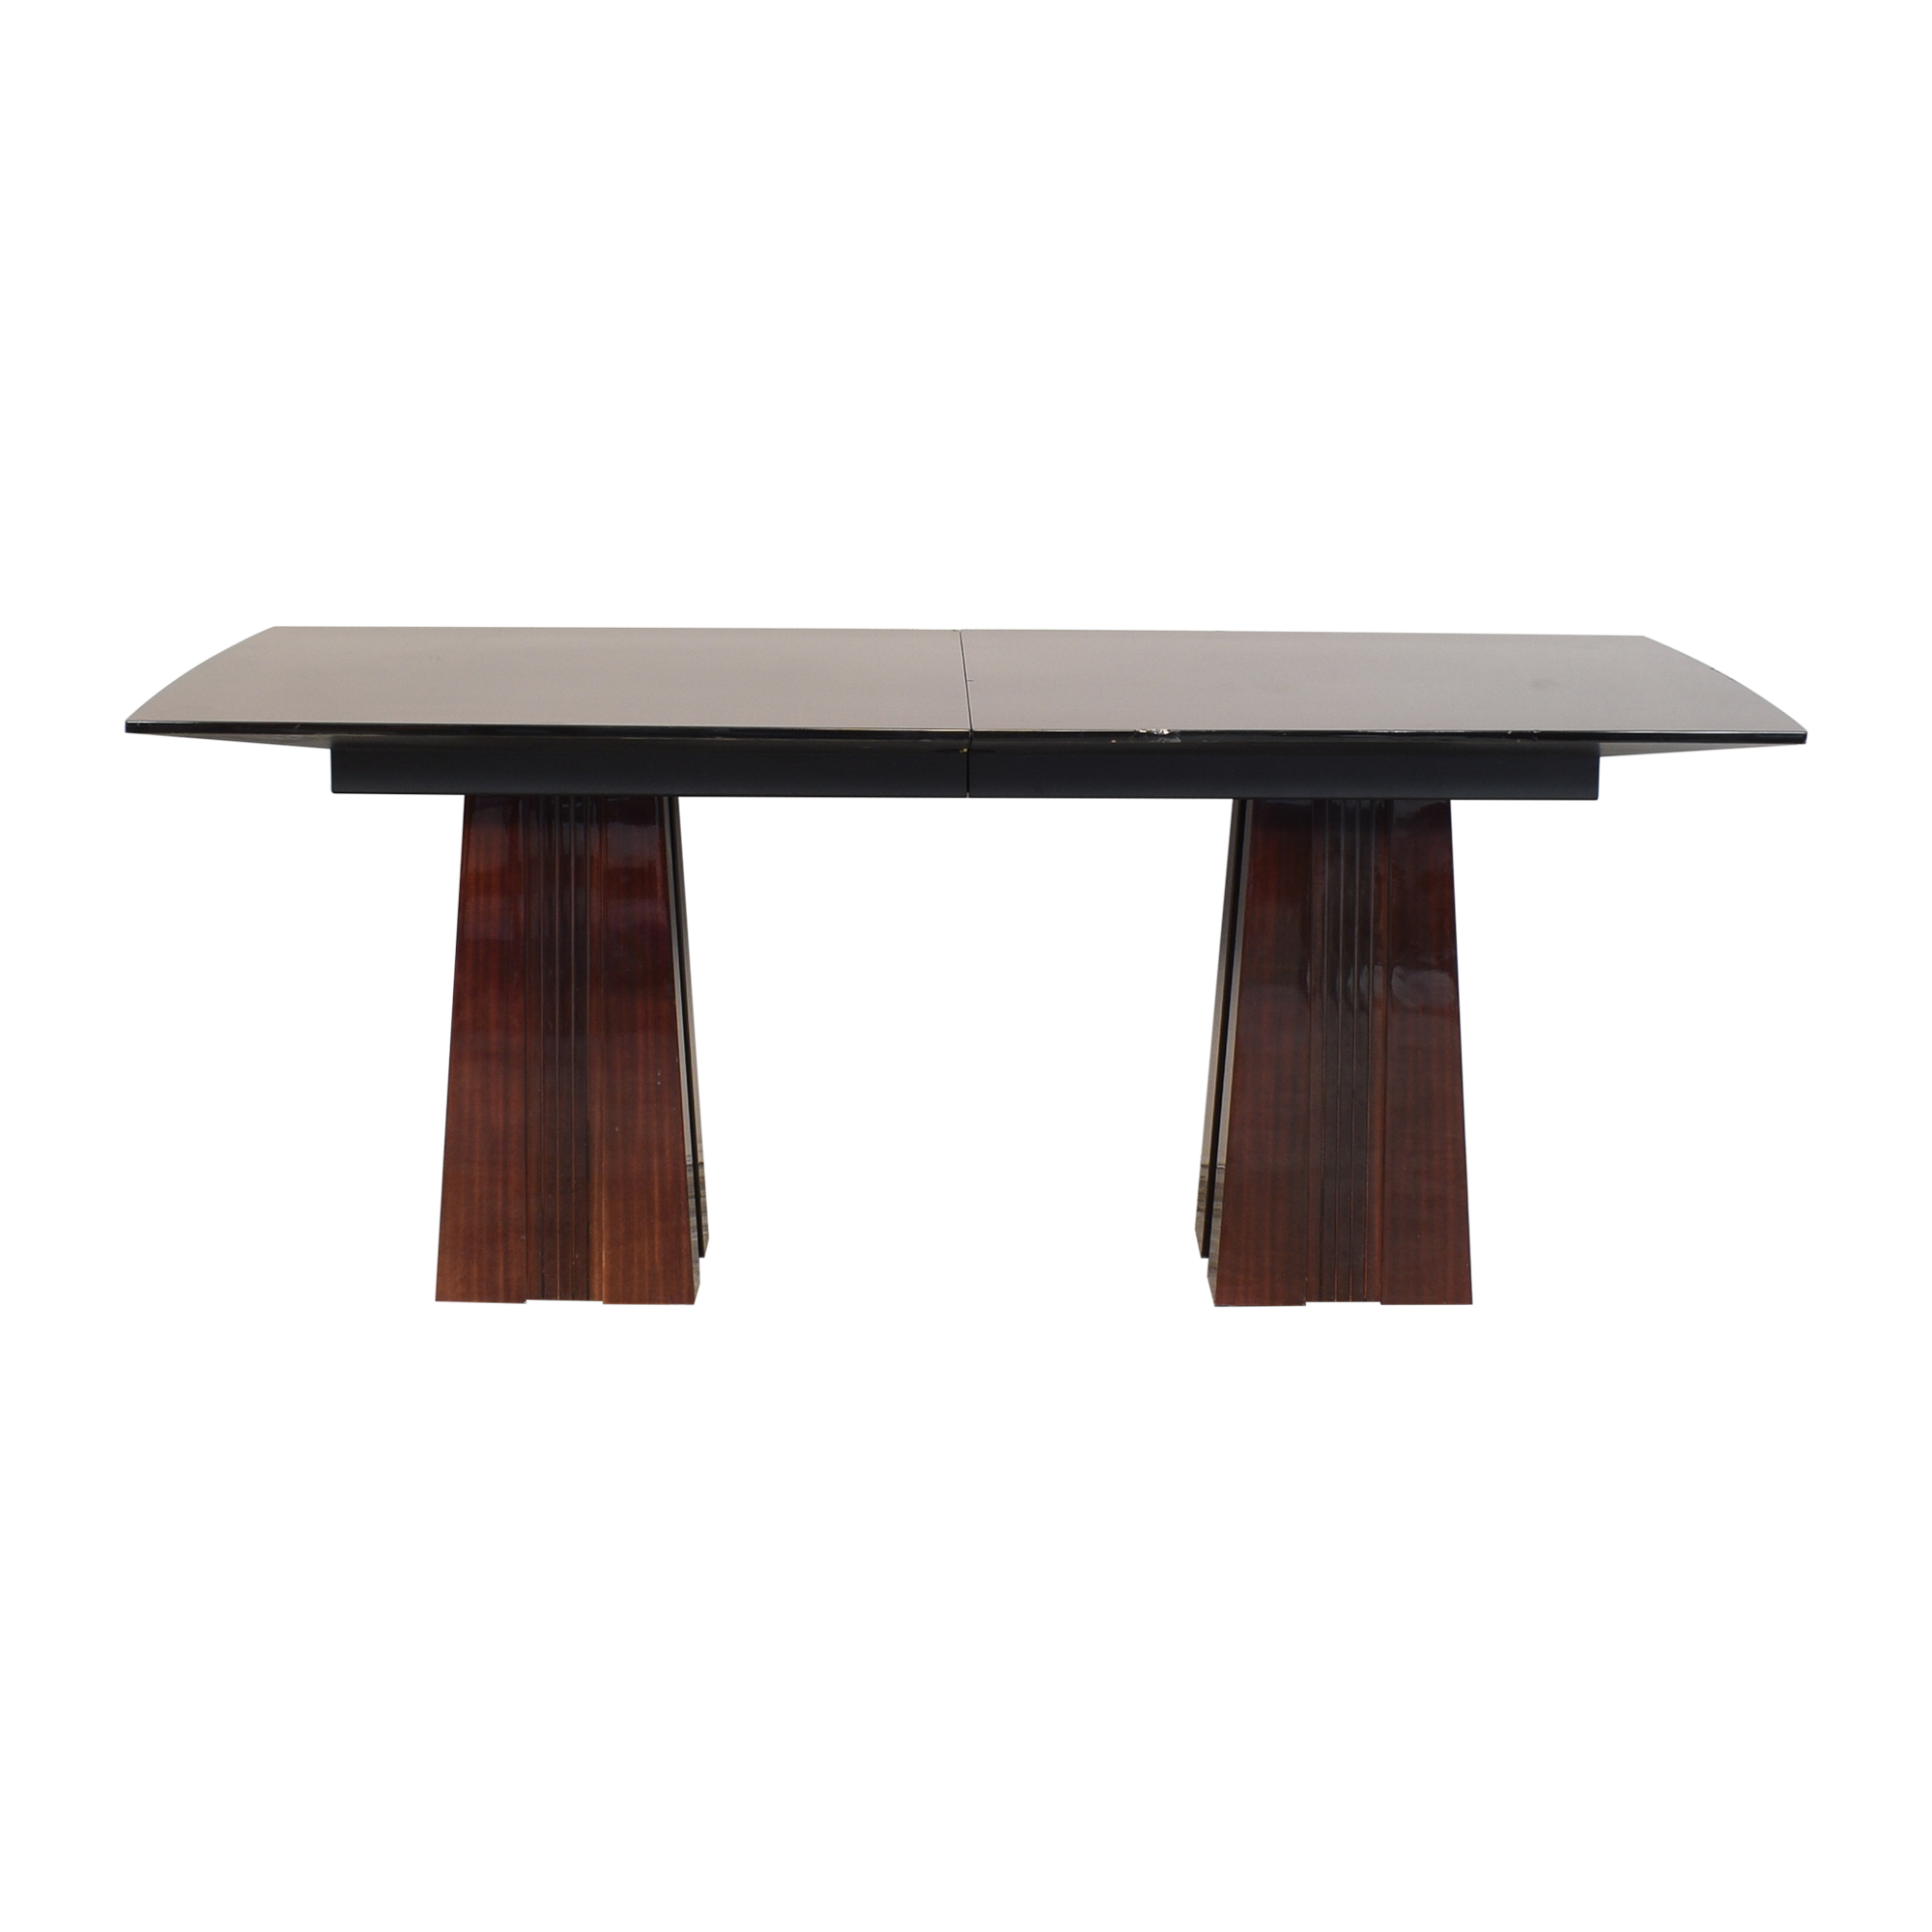 Dakota Jackson Ariel Collection Dining Table sale